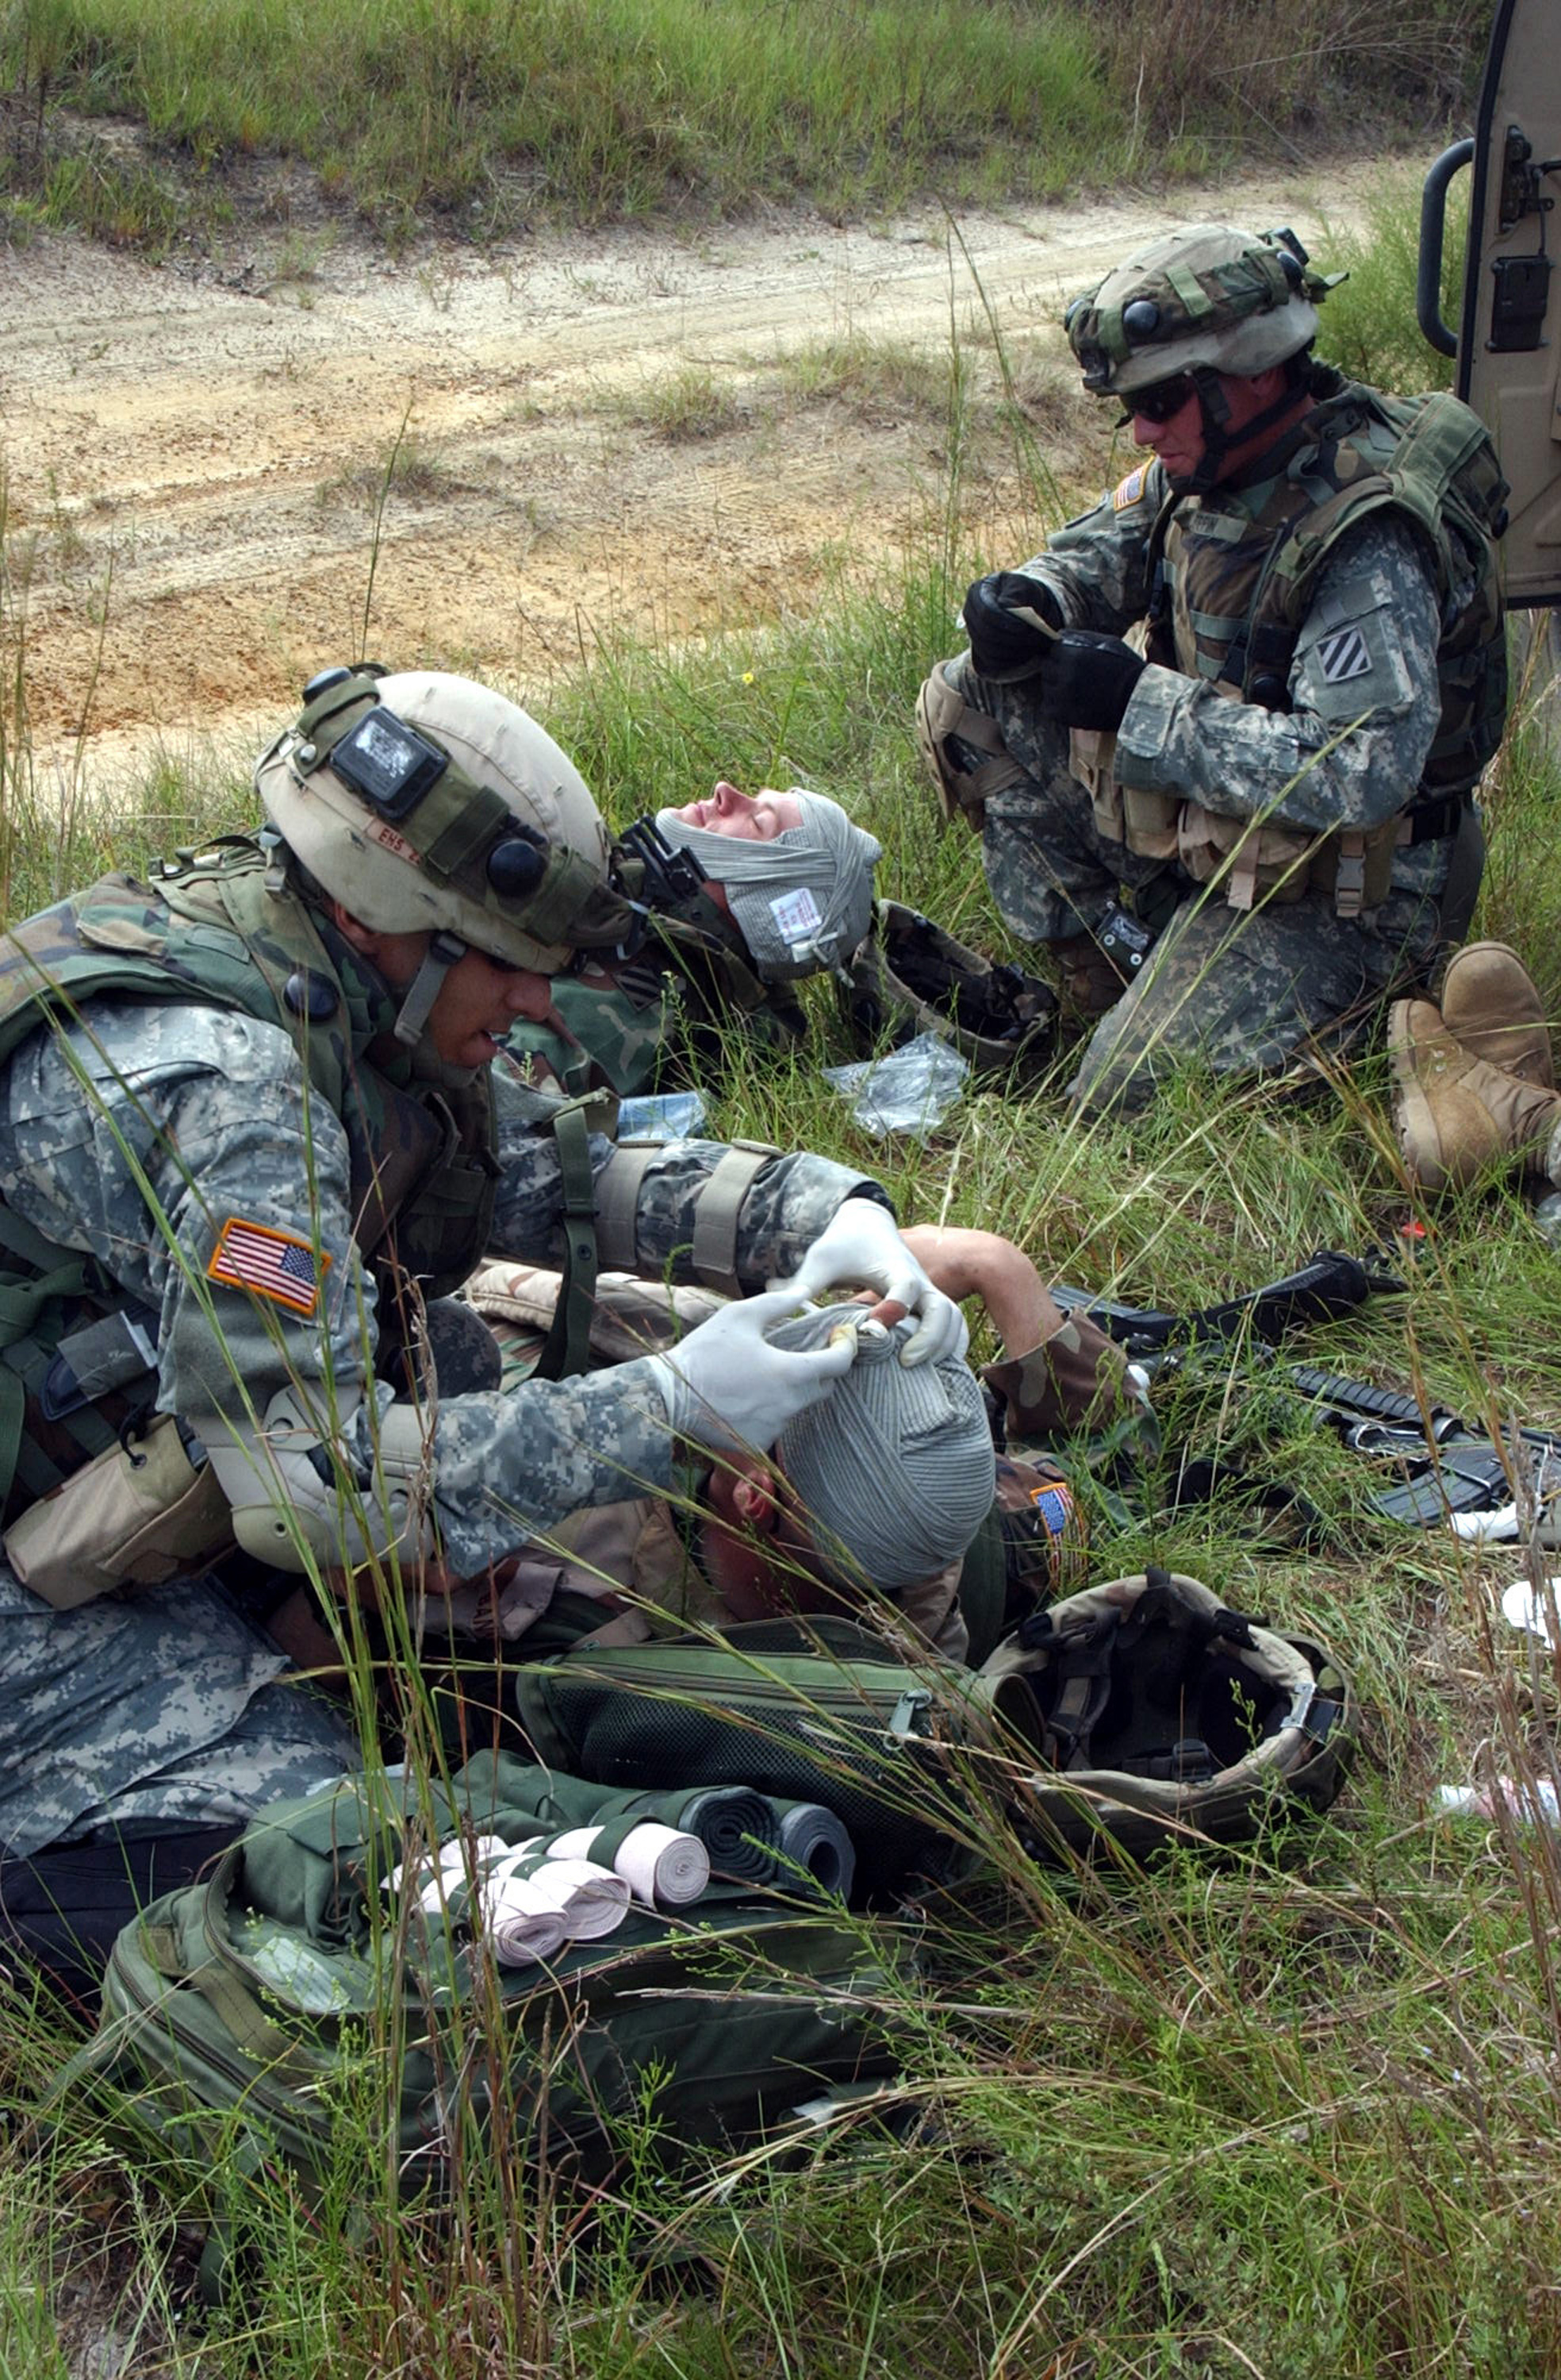 Stock Photo: U.S. Army Soldiers Care for Simulated Casualties.